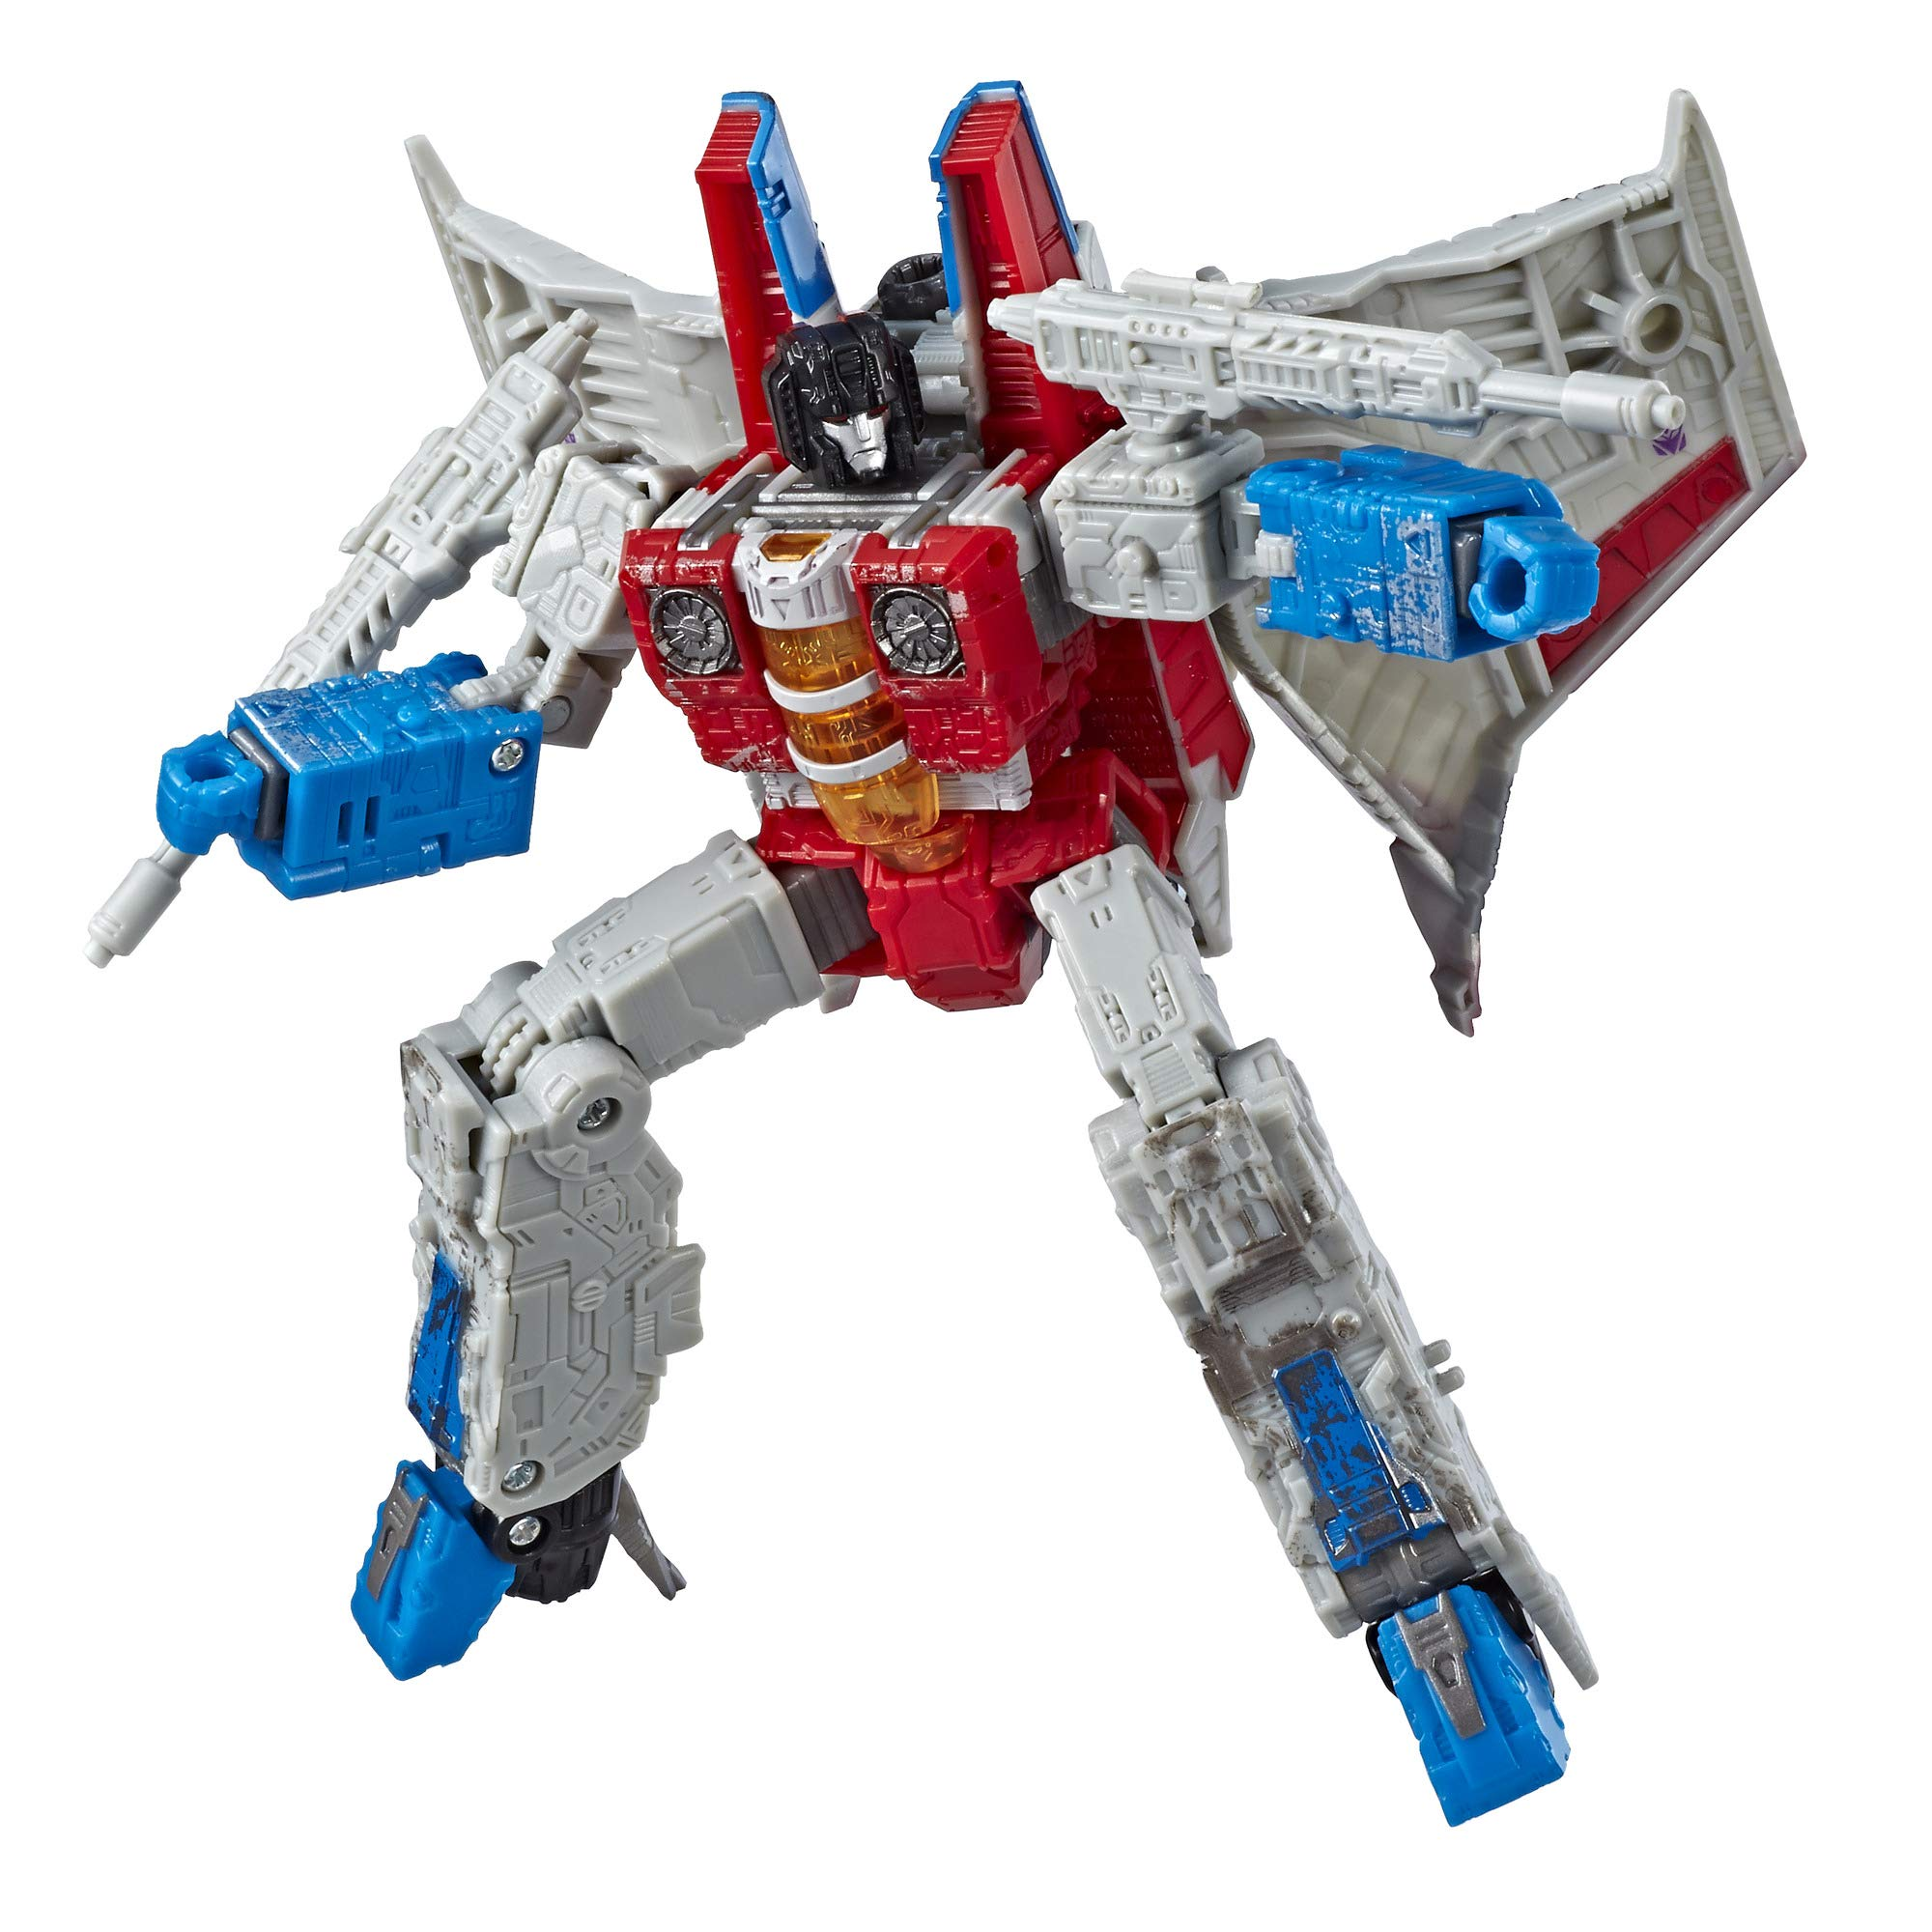 Transformers Toys Generations War for Cybertron Voyager Wfc-S24 Starscream Action Figure - Siege Chapter - Adults & Kids Ages 8 & Up, 7'' by Transformers (Image #1)